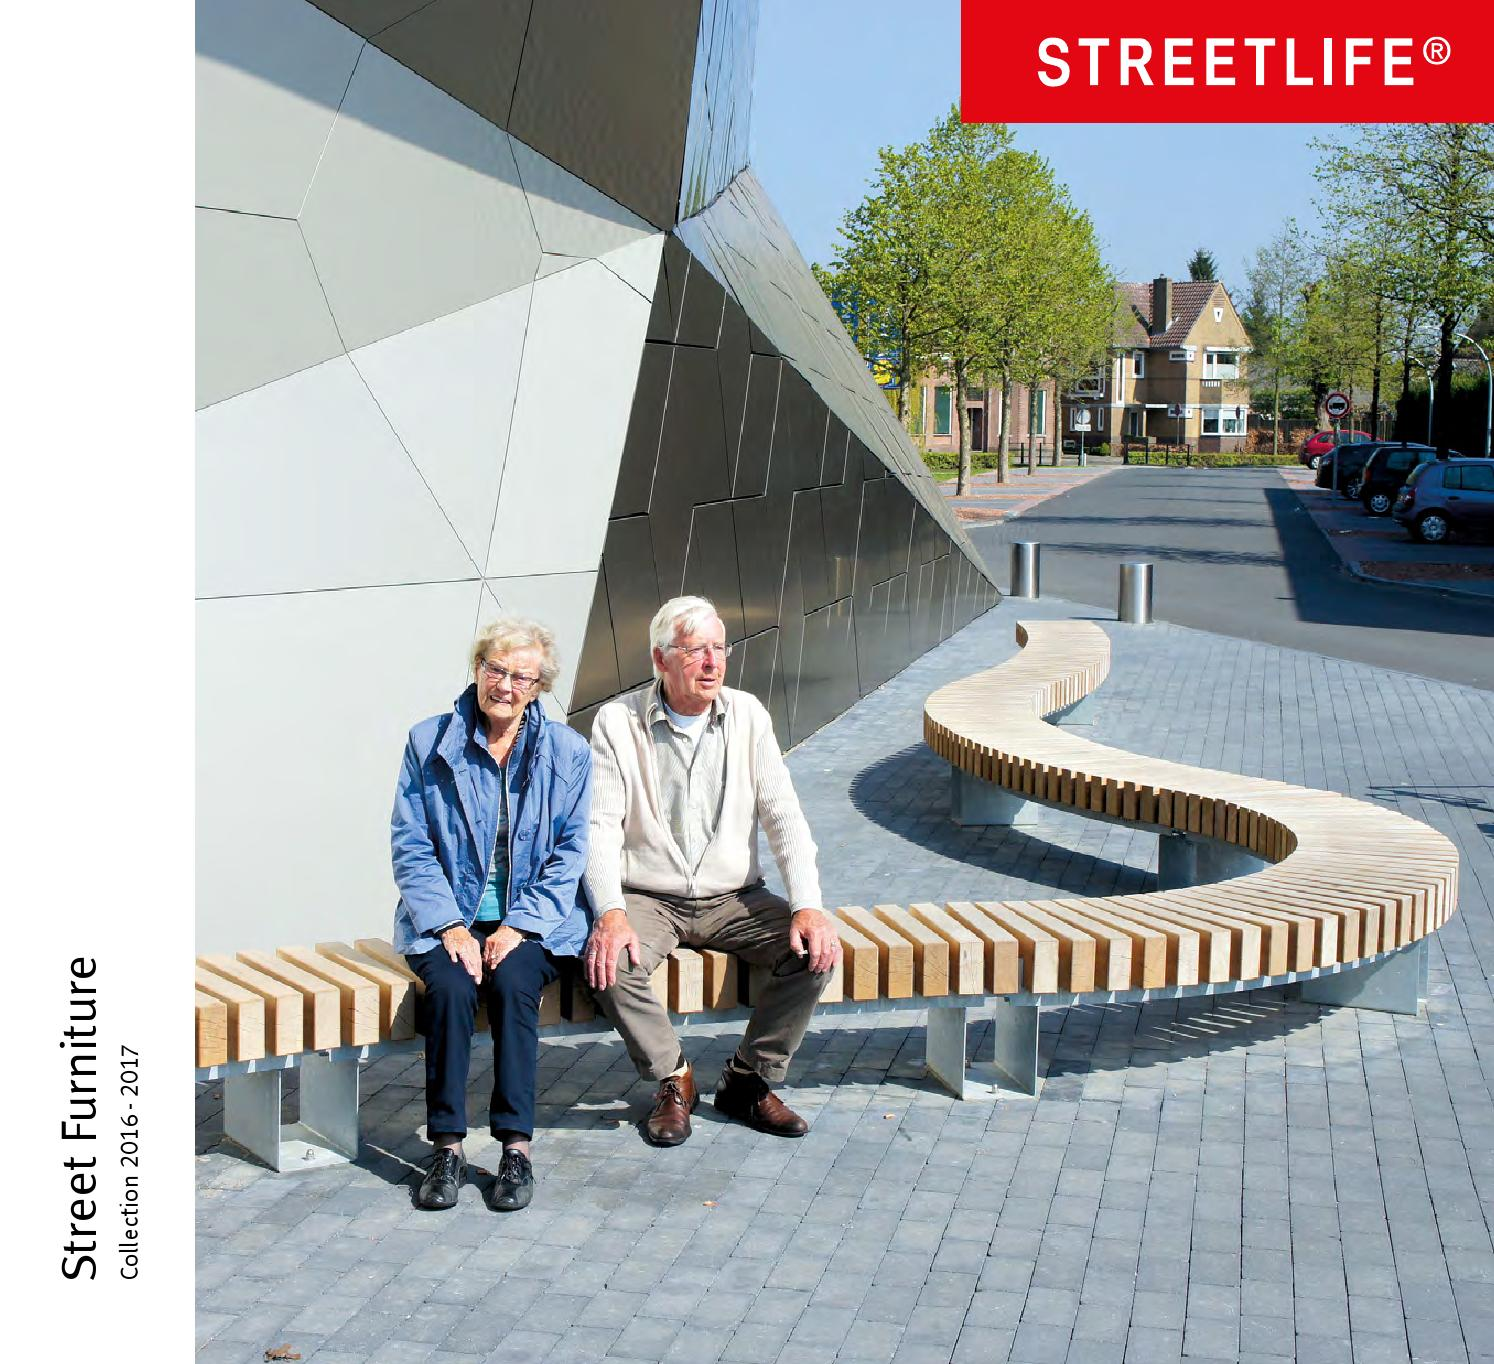 Streetlife Catalogus 2016 2017 A En By Streetlife Issuu - De Splinter Drachten